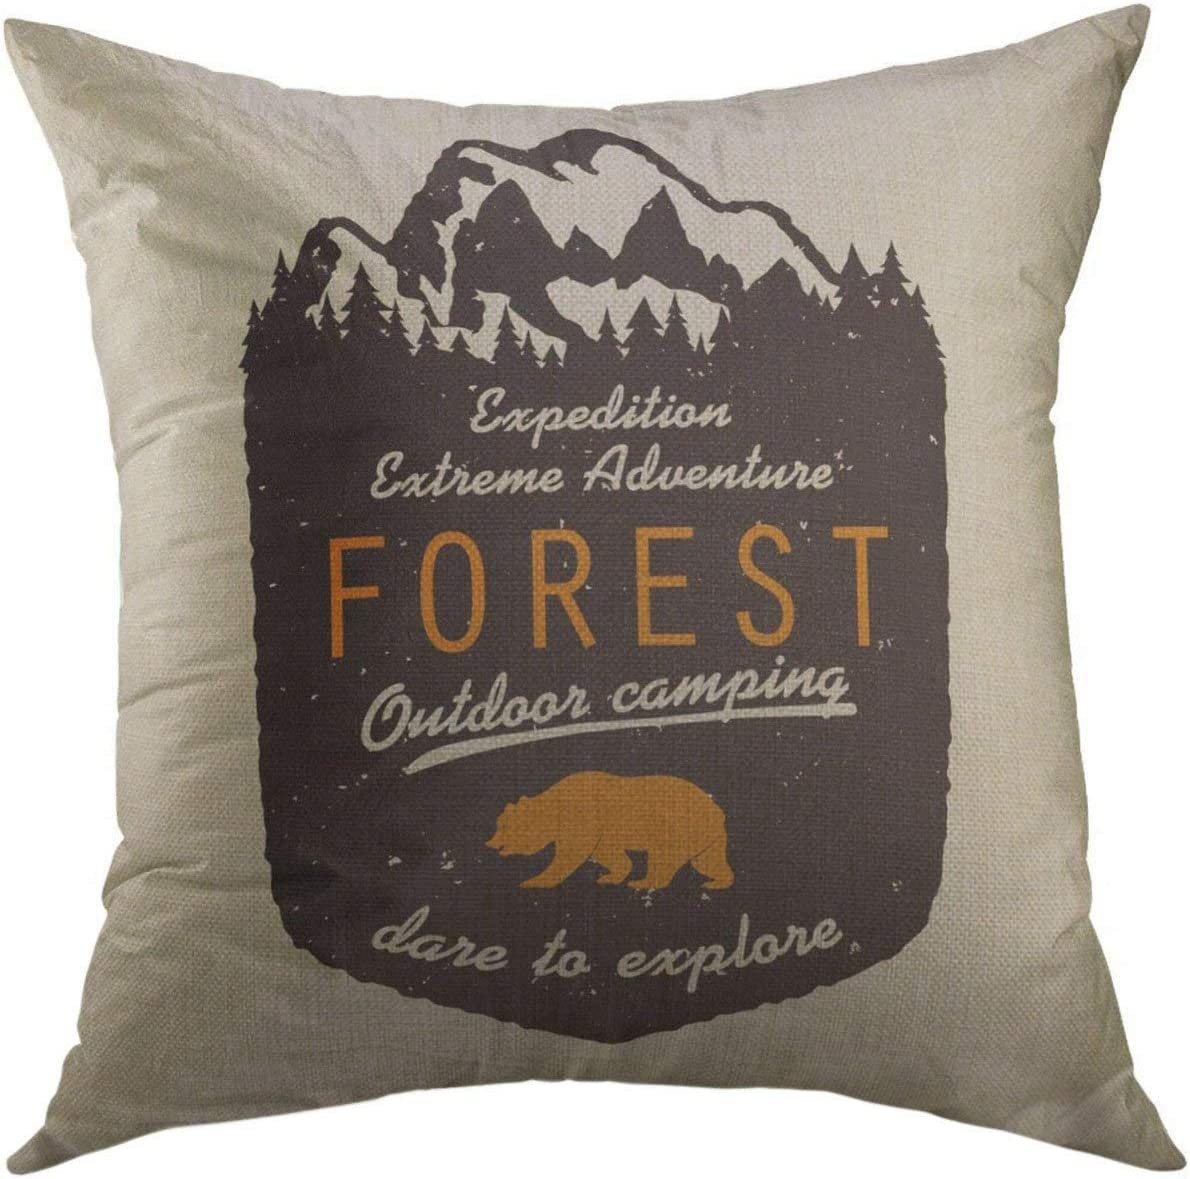 Mugod Forest Decorative Throw Pillow Cover for Couch Sofa,Adventure Expedition with Mountains Pine Trees Climbing Trekking Hiking Mountaineering Stamp Hipster Home Decor Pillow case 18x18 Inch